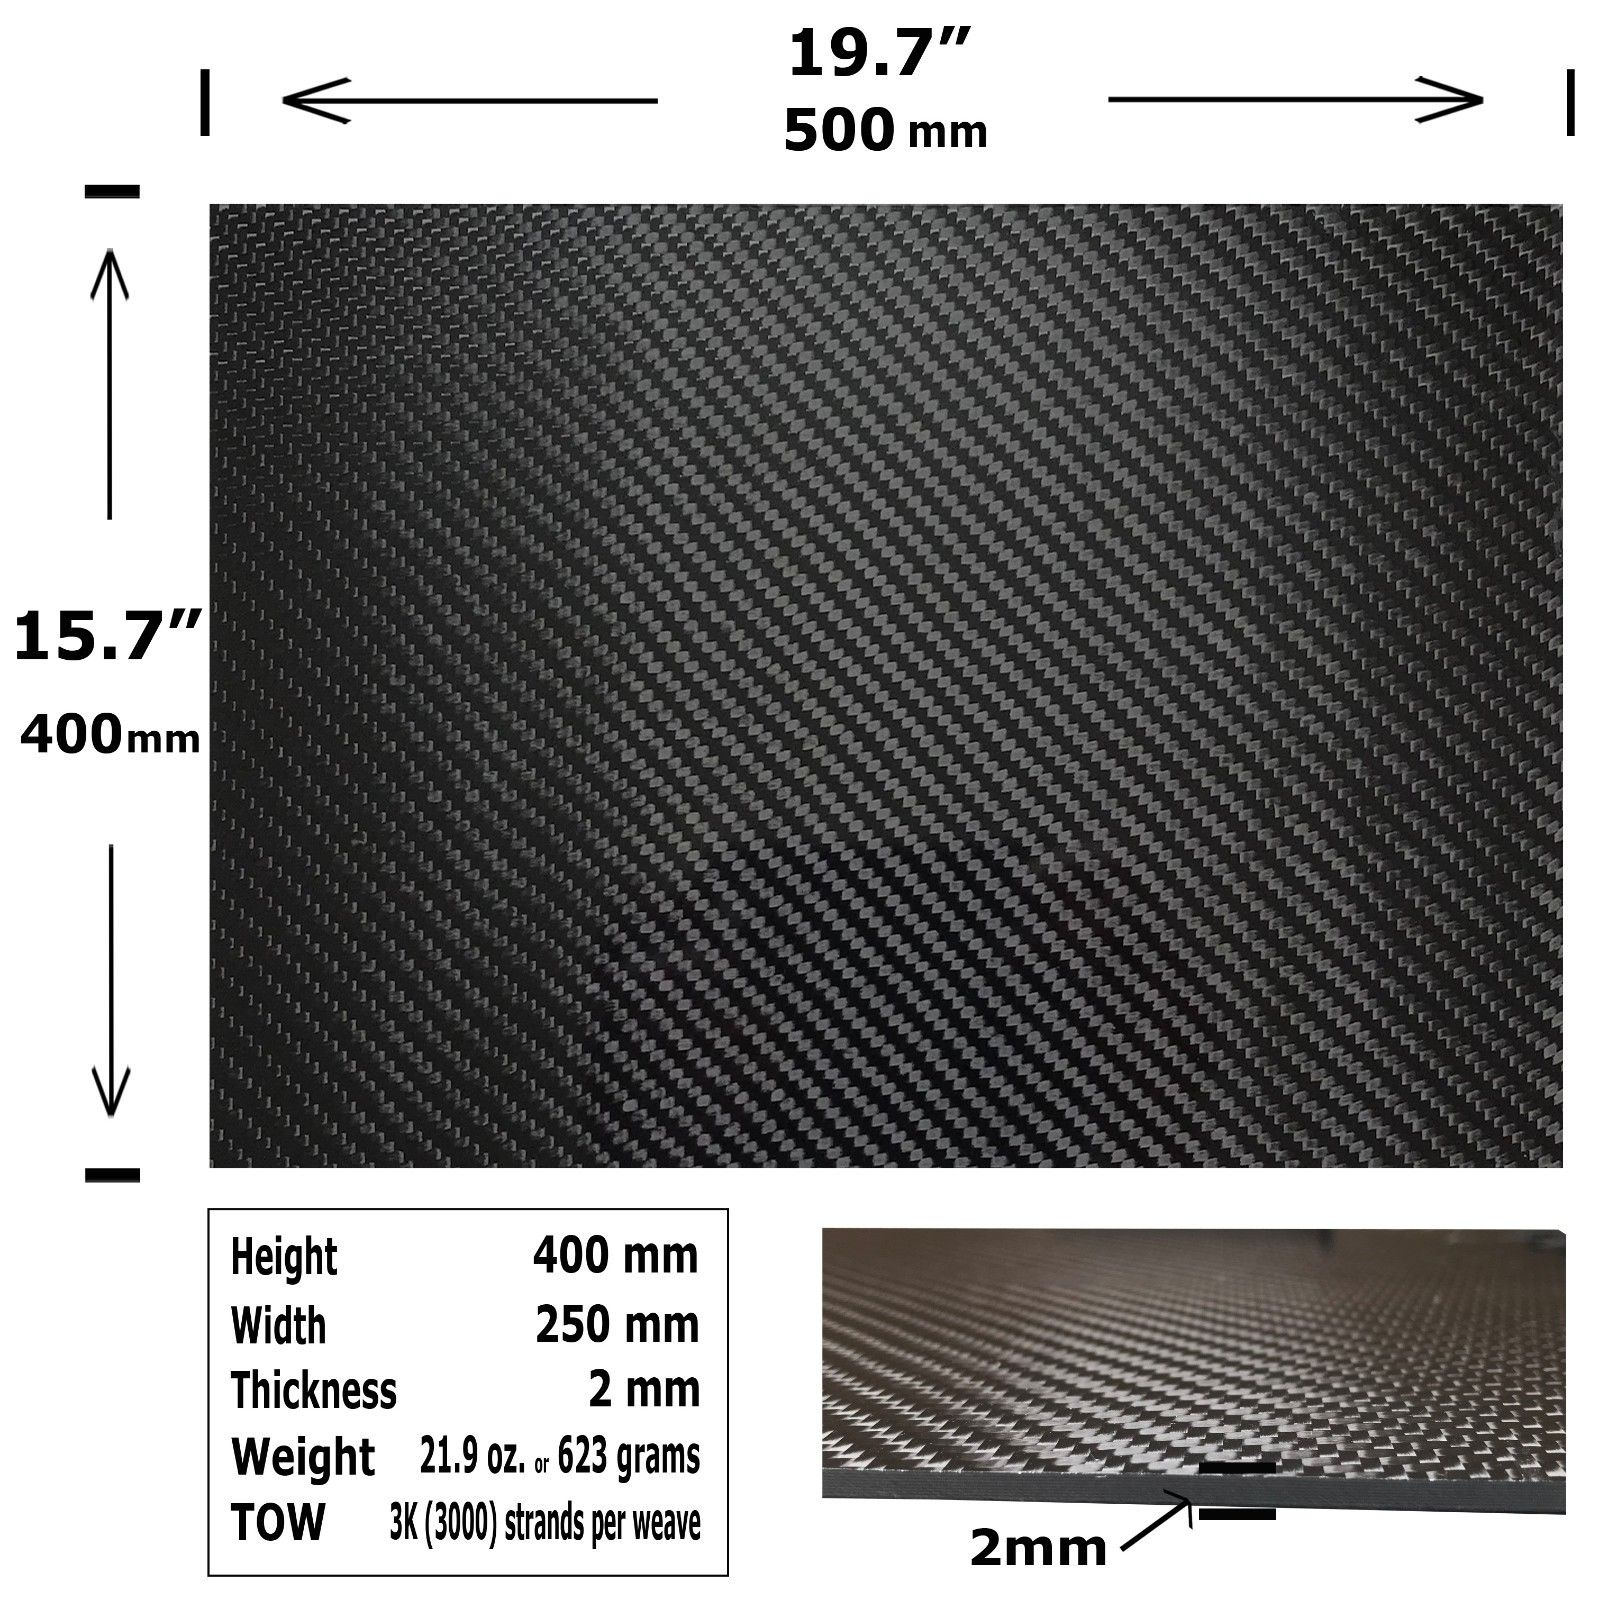 400x500x2mm Carbon Fiber Board Plate Sheet 3K Twill Weave High Gloss Vehicle Material